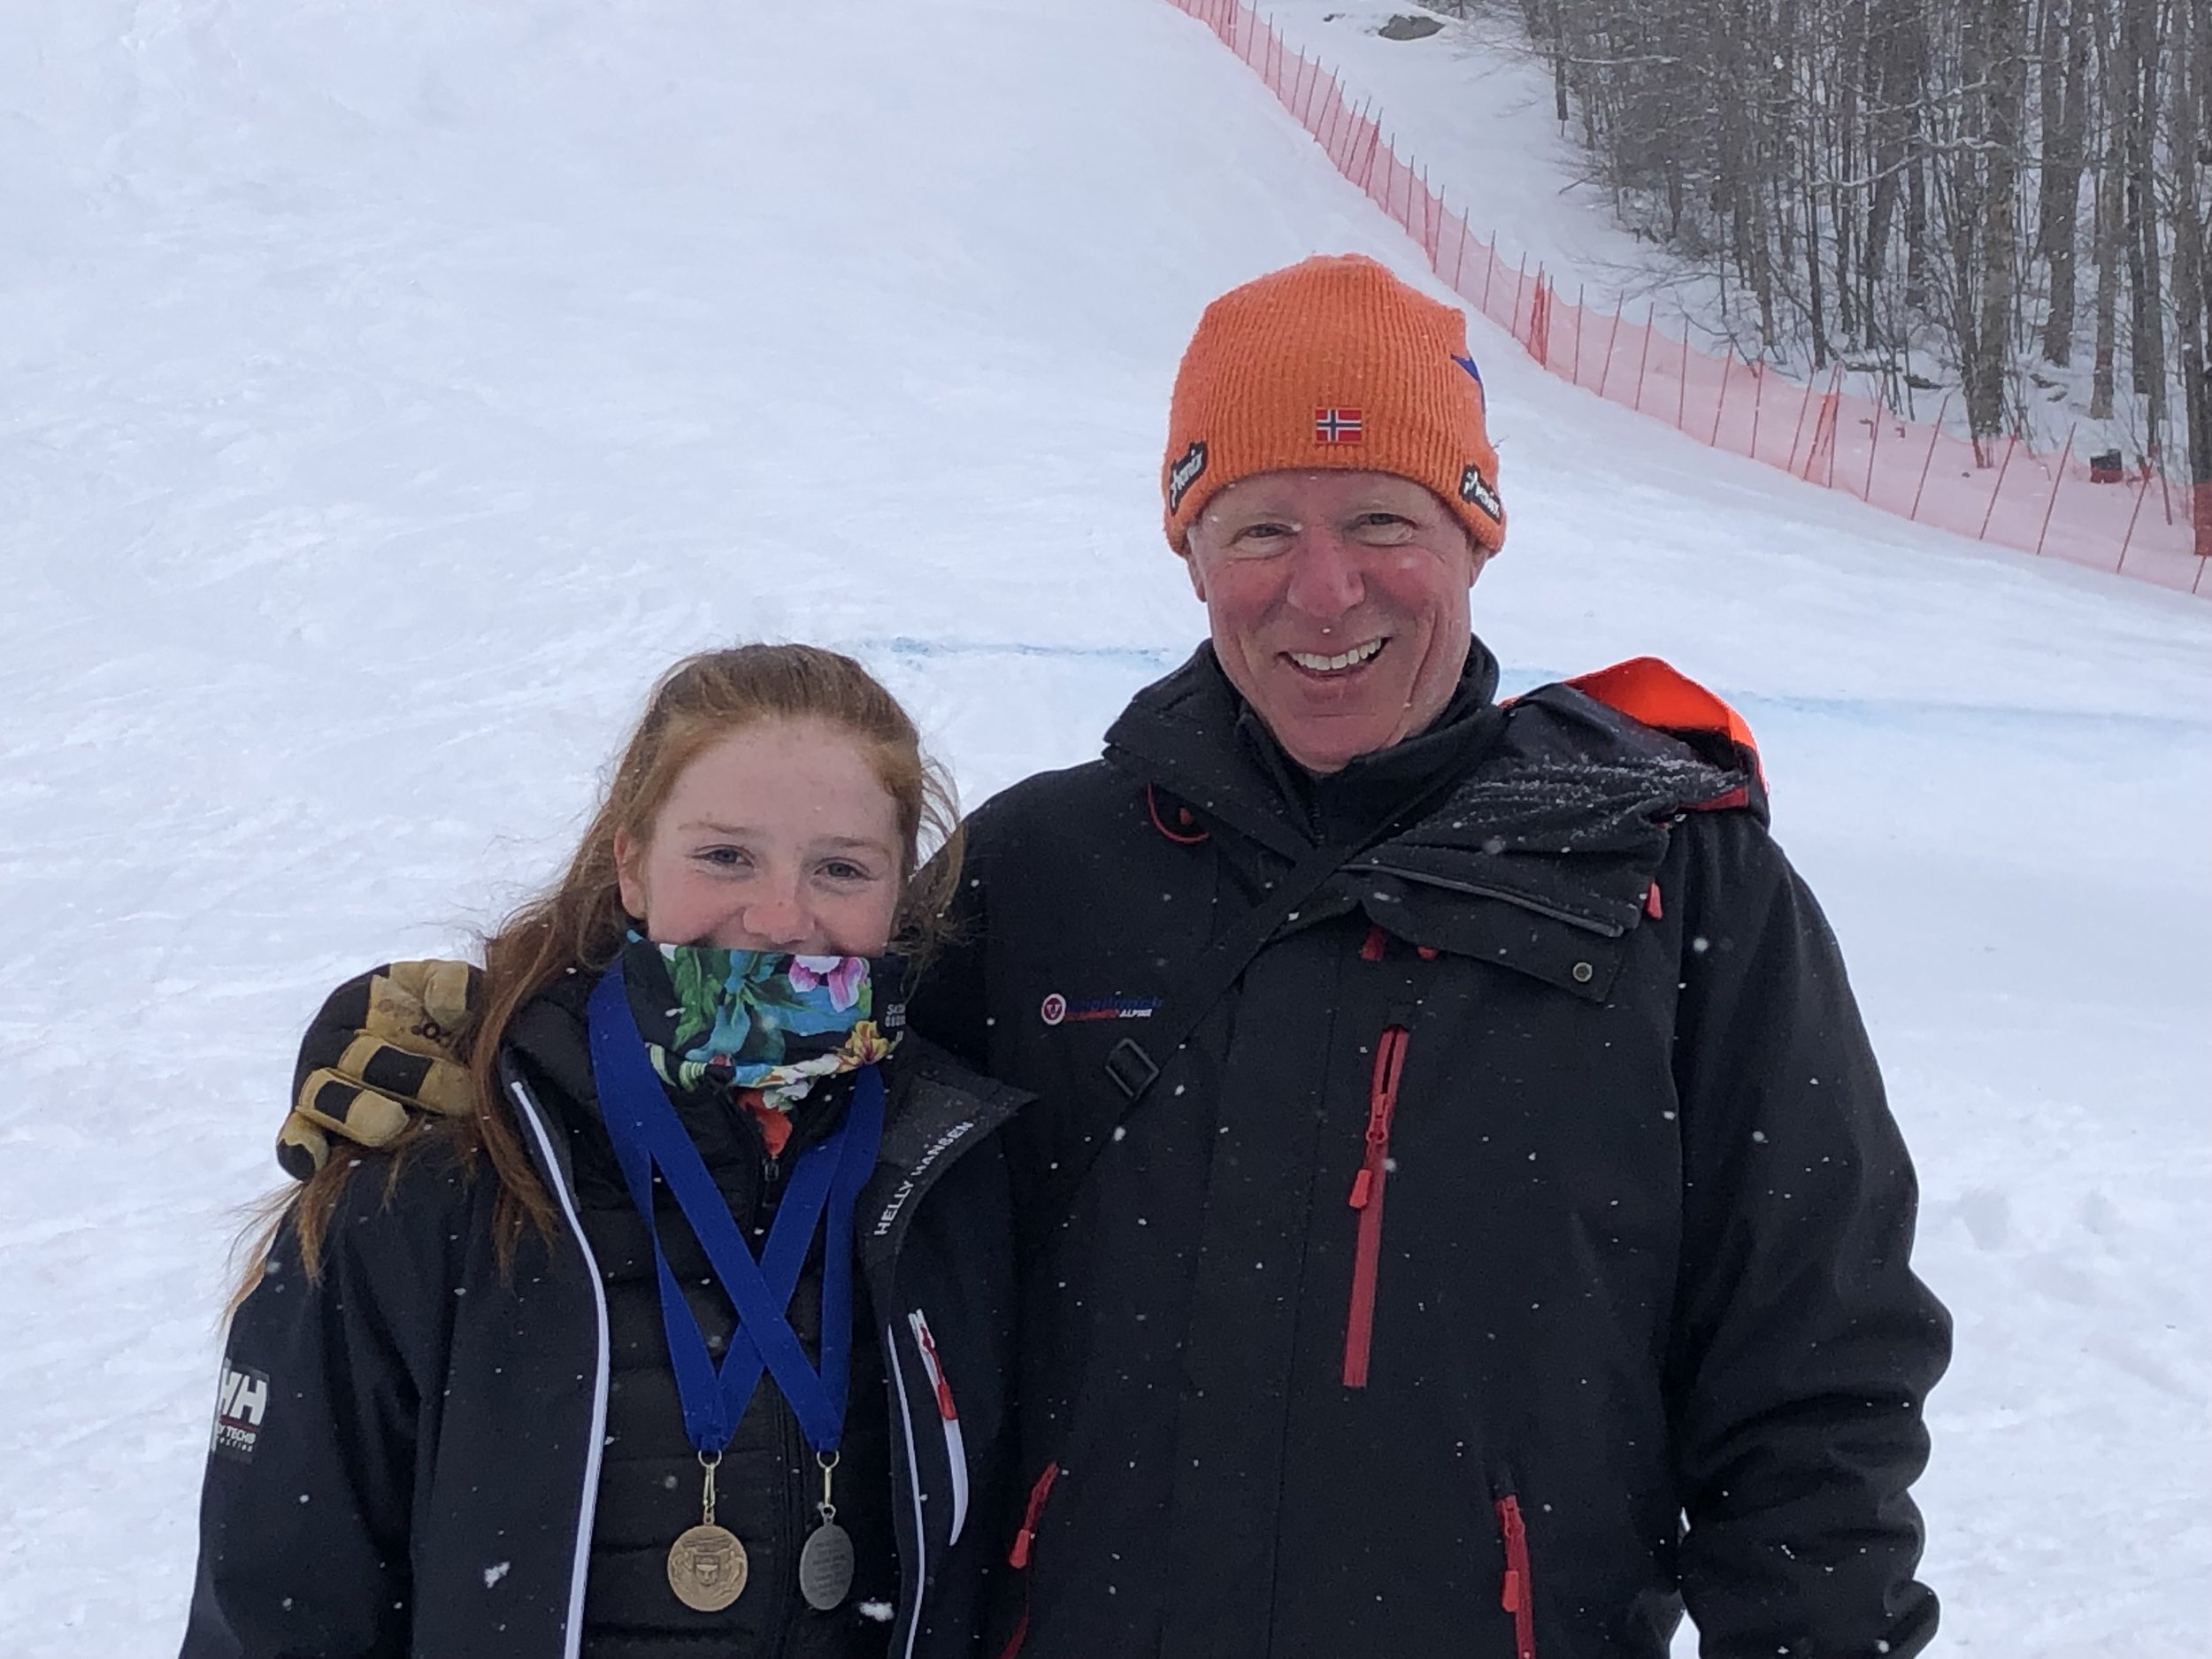 Above: Kelly Gebhardt celebrates with Ski Runners U16/19 Head Coach Scott Smith. Title photo: Kelly Gebhardt, second from left, on the podium today at Pico Ski Club.